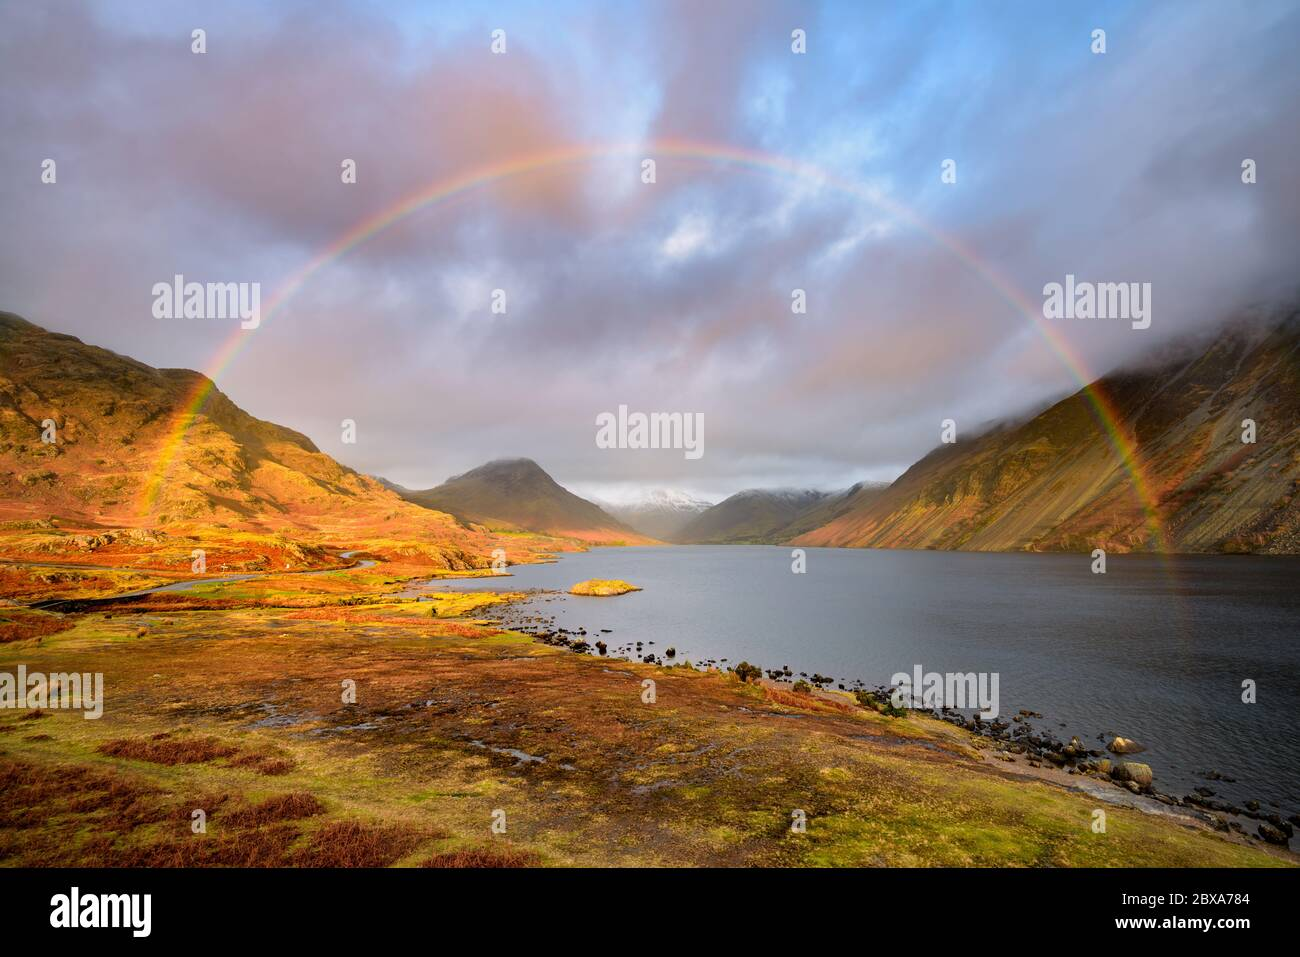 Full rainbow over dramatic landscape view of Wastwater lake in The Lake District National Park, United Kingdom. Stock Photo